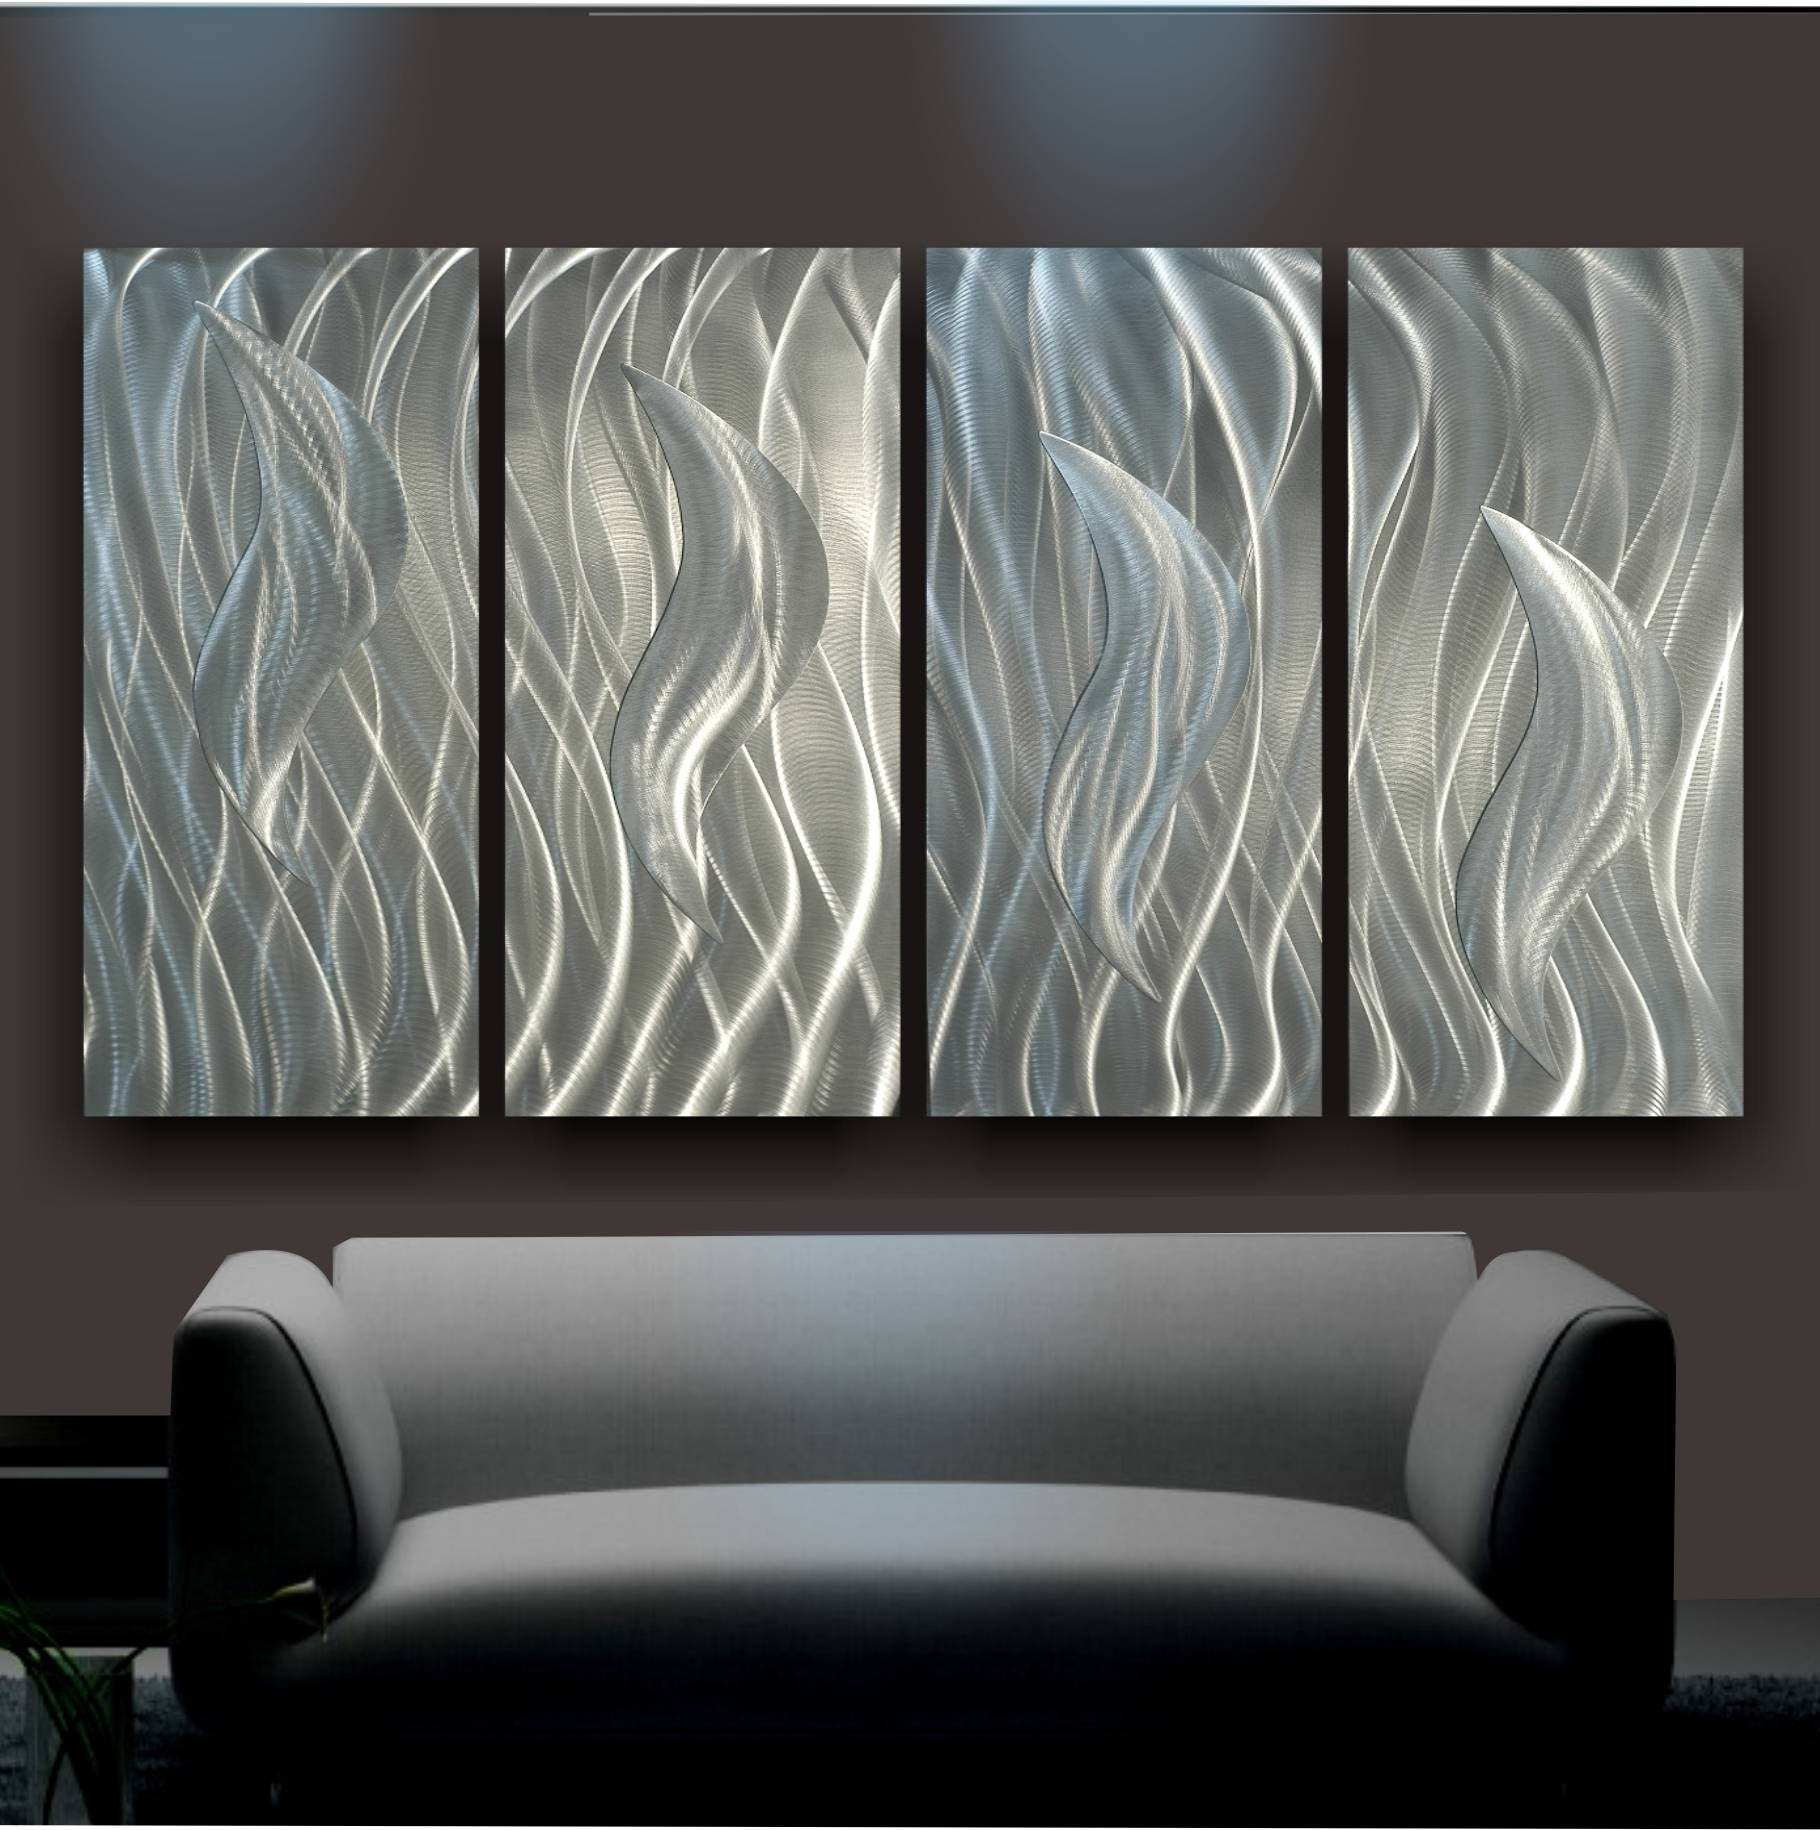 Metal Wall Designs Cheap Metal Wall Designs | Home Design Ideas With Regard To Most Popular Inexpensive Metal Wall Art (View 9 of 20)